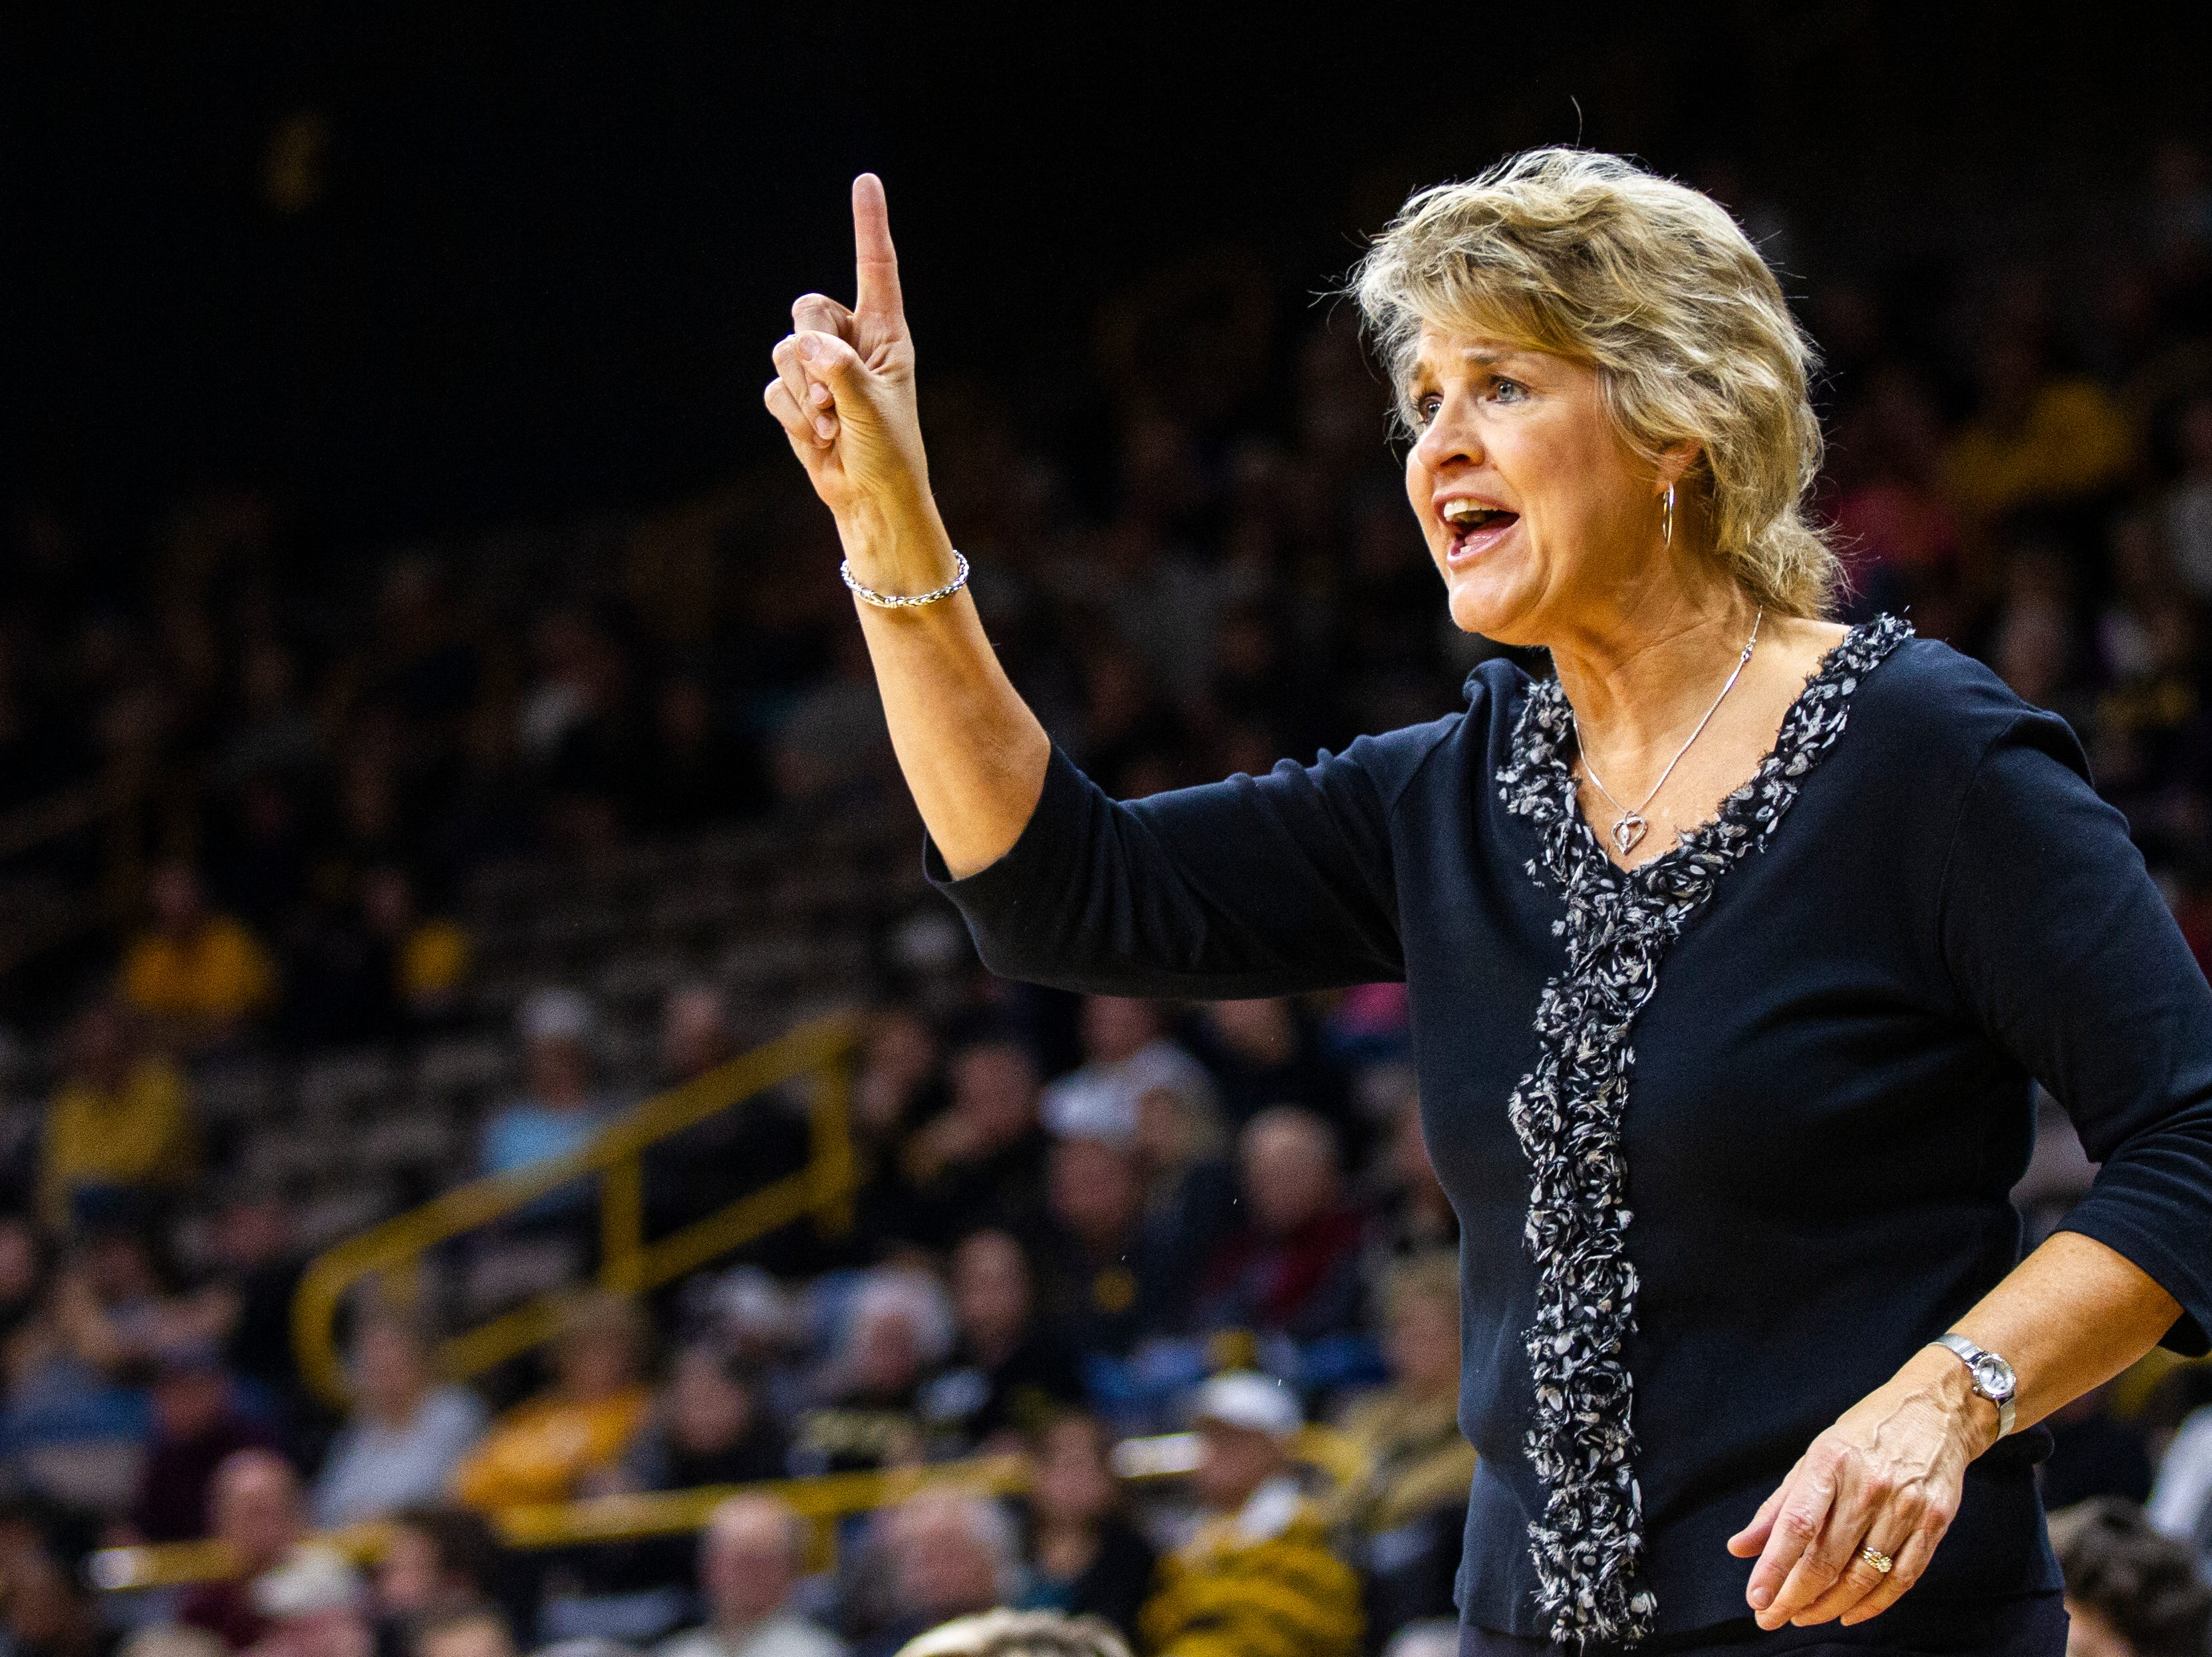 Iowa head coach Lisa Bluder calls out to players during a women's basketball exhibition basketball game on Tuesday, Nov. 6, 2018, at Carver-Hawkeye Arena in Iowa City.